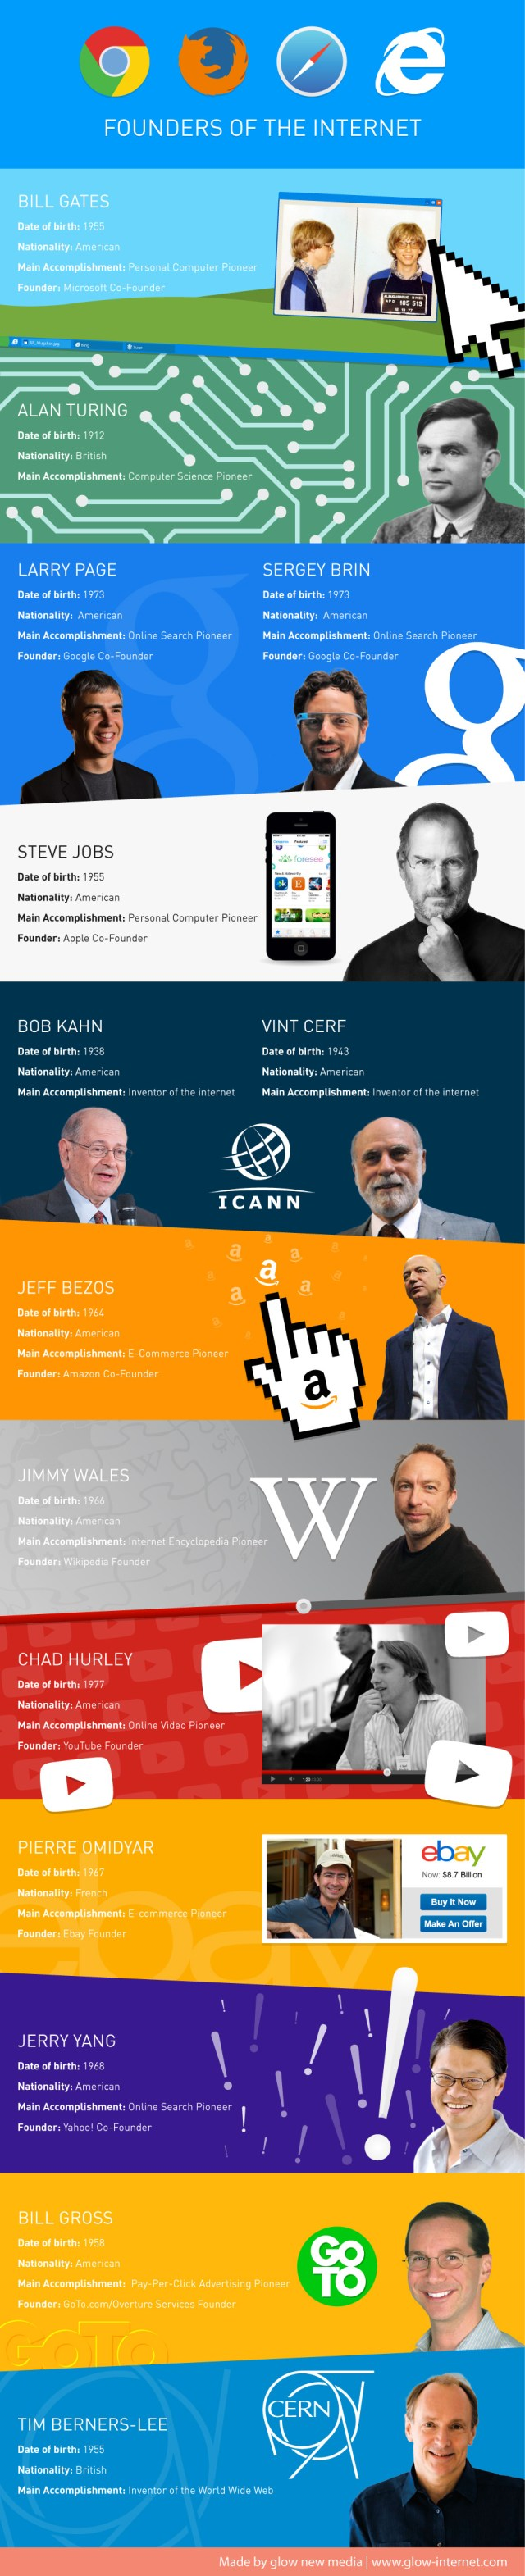 Founders of the Internet